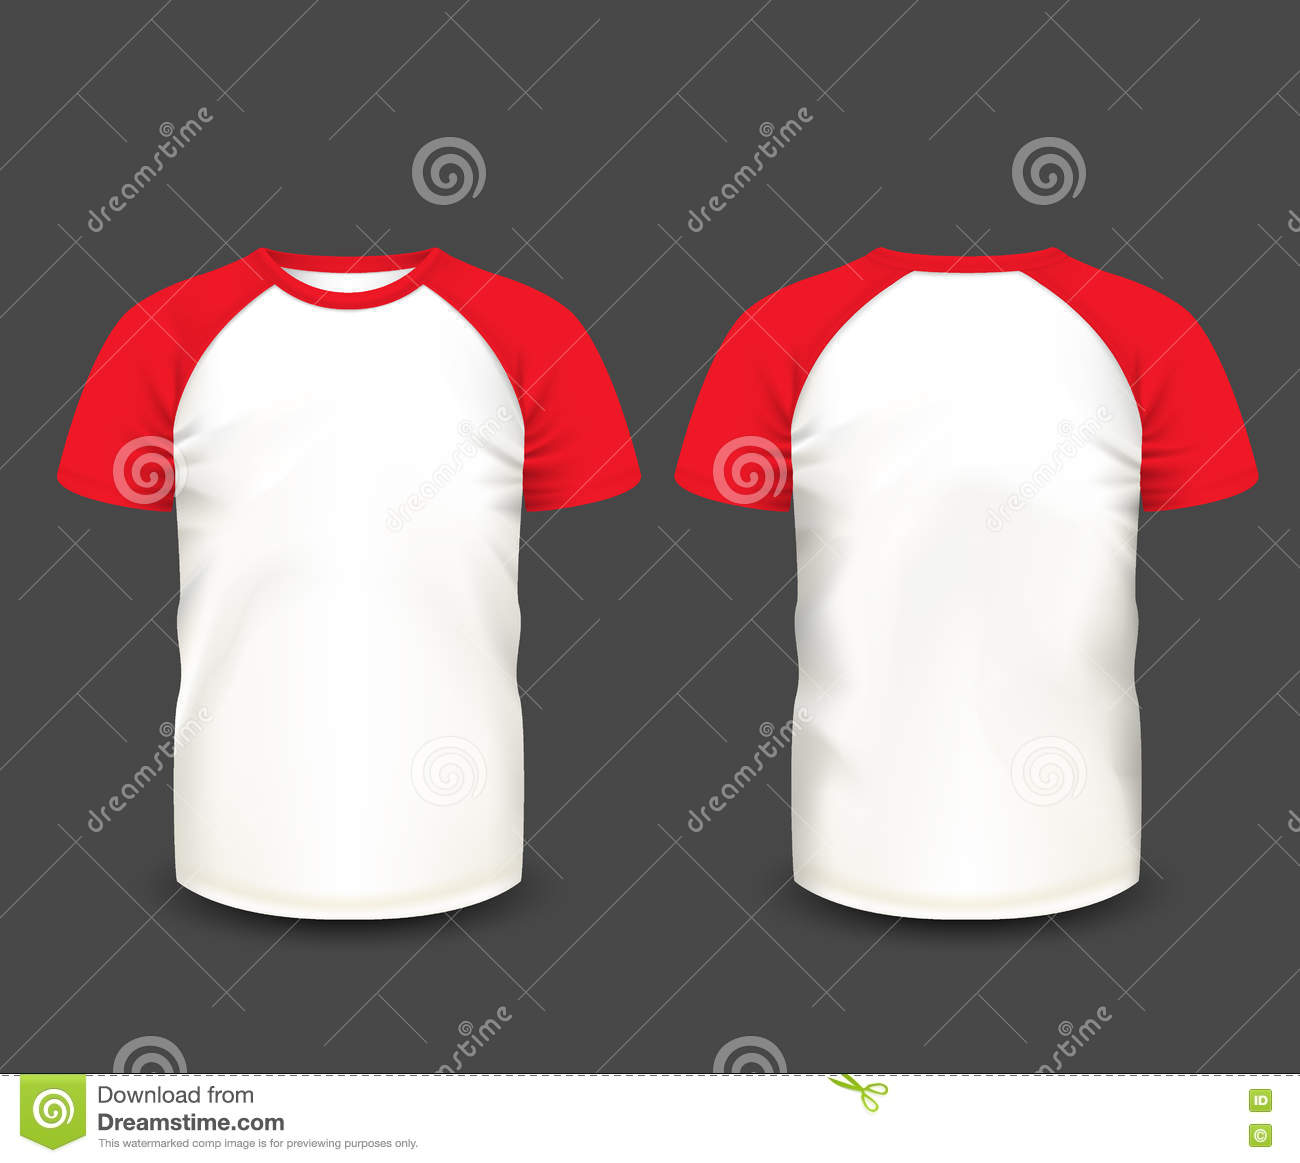 White t shirt eps - Royalty Free Vector